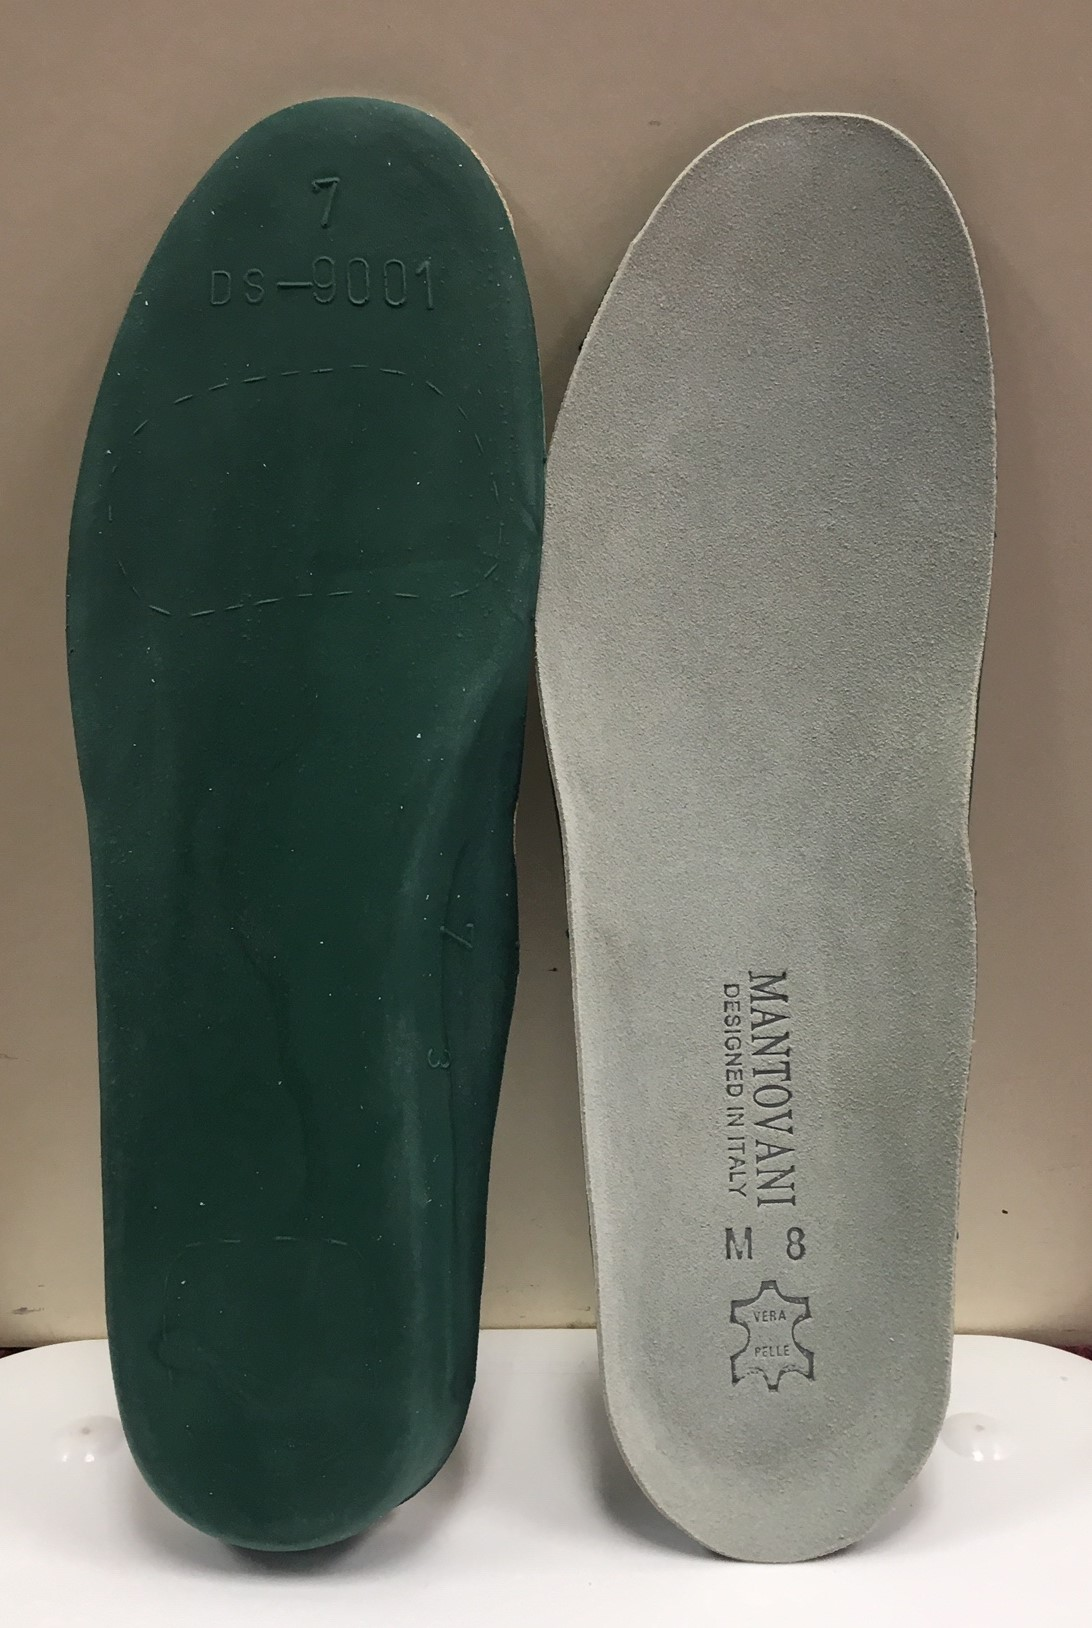 Barry's Sport Innersole Suede Upper With Open Celled Cushioning